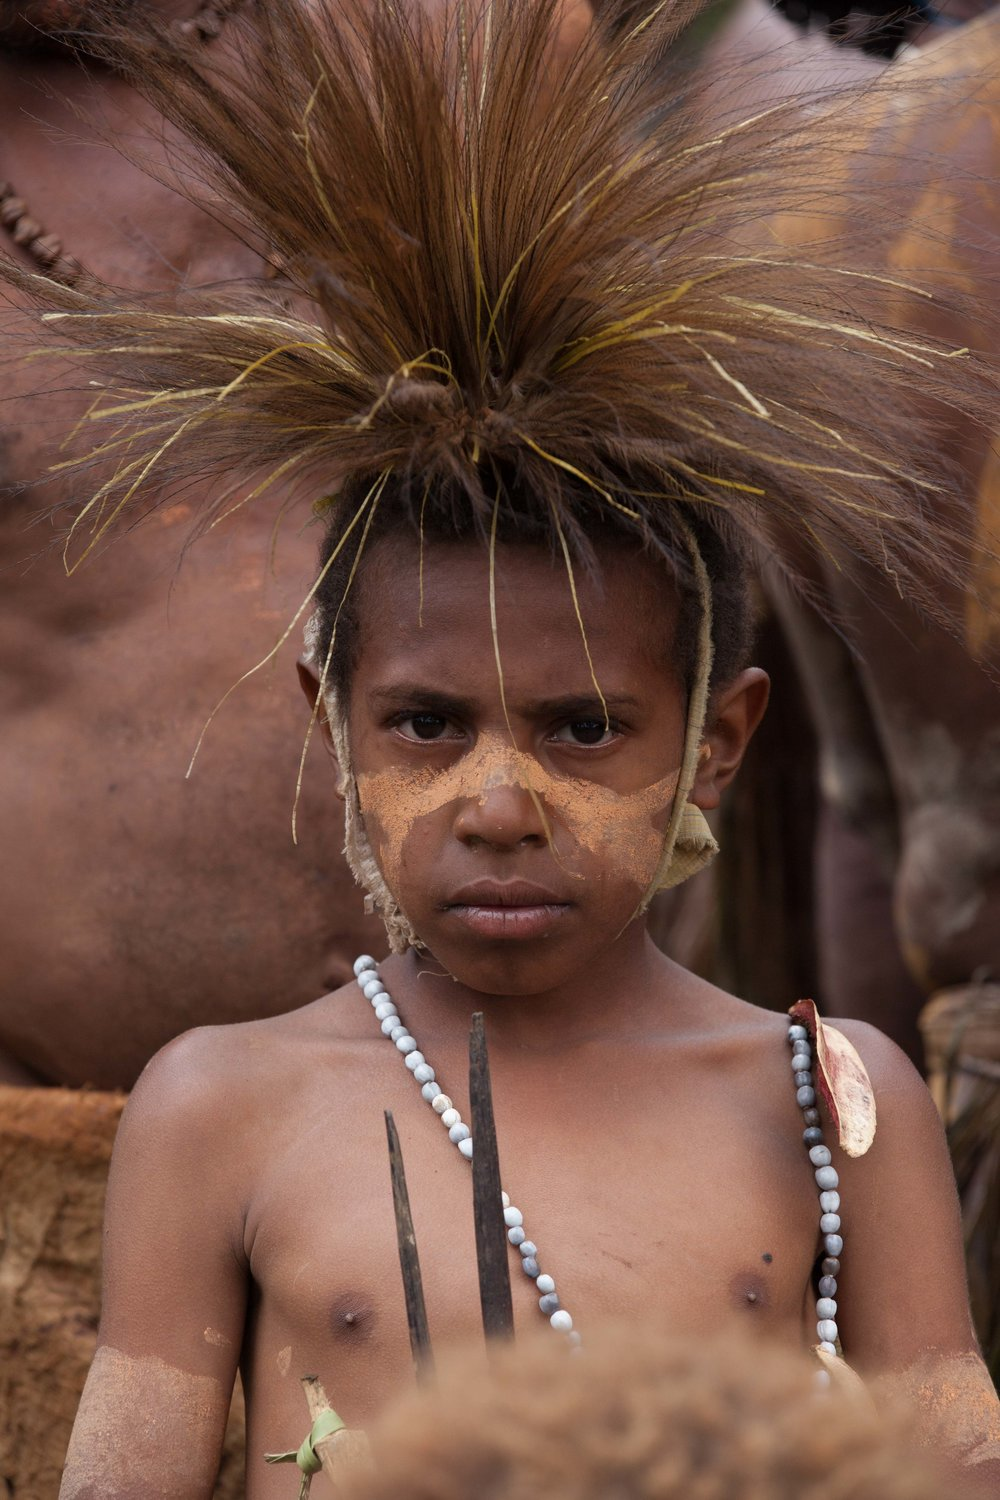 A child in traditional garb. Bollen village, Chimbu province